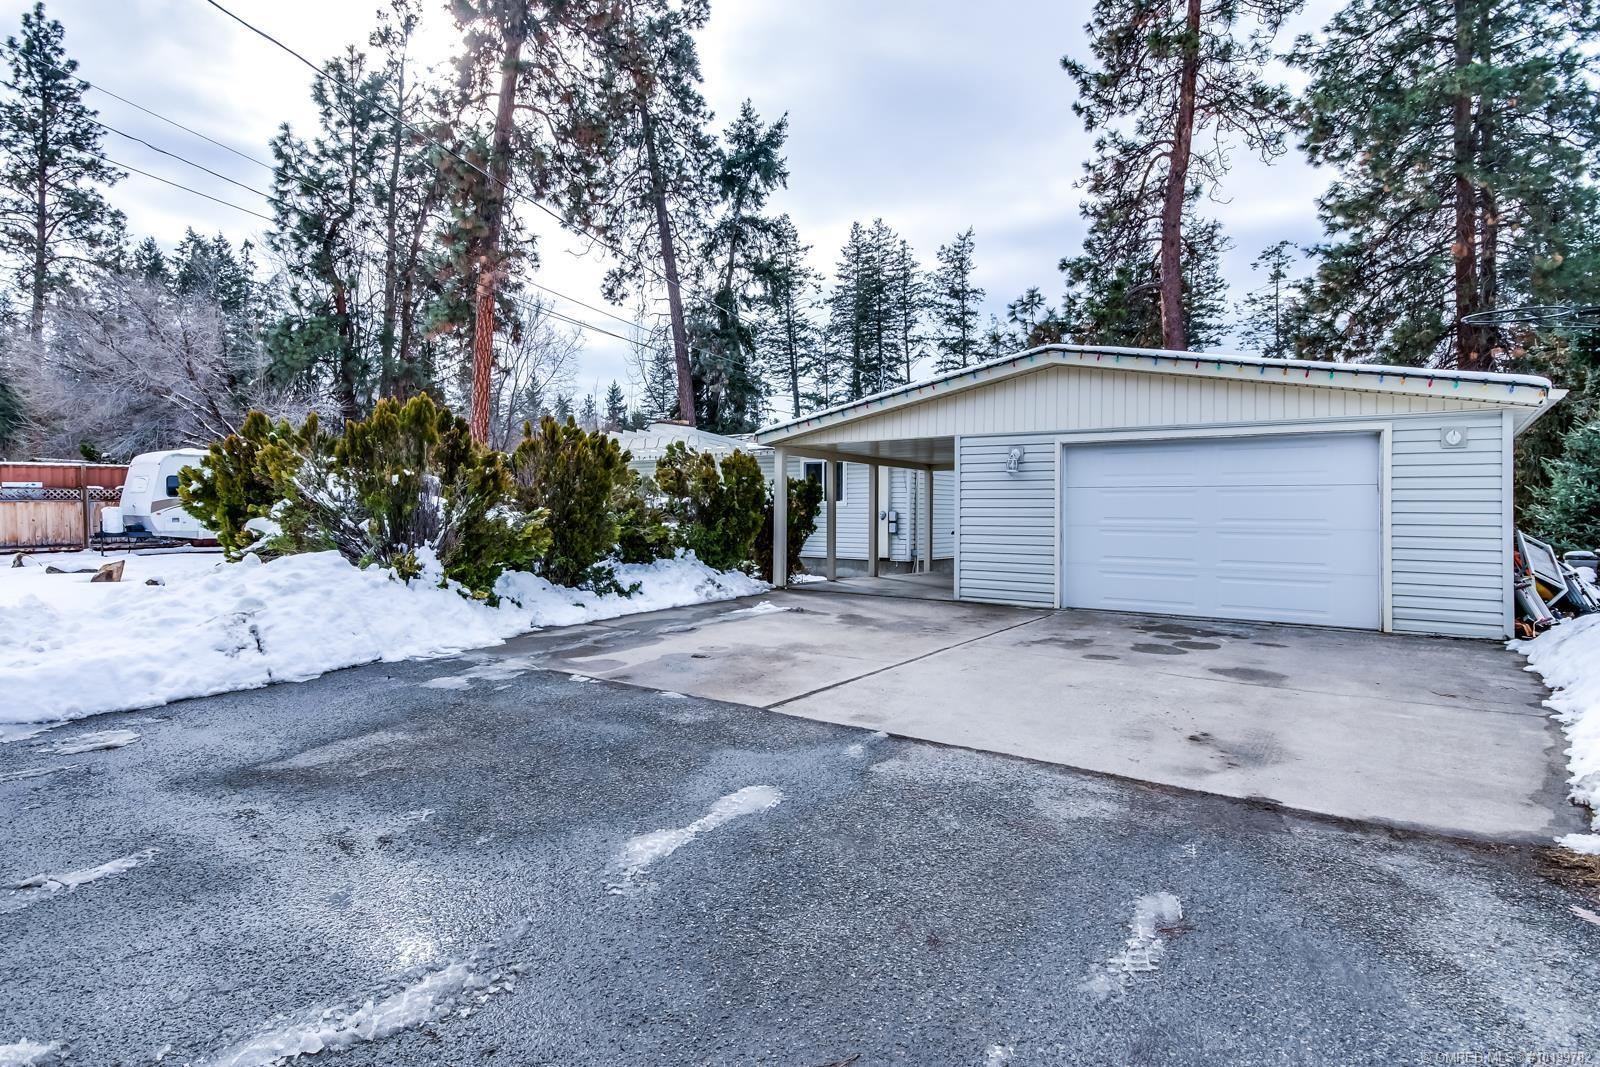 Removed: 2570 Maquinna Road, Kelowna, BC - Removed on 2020-03-04 04:33:19